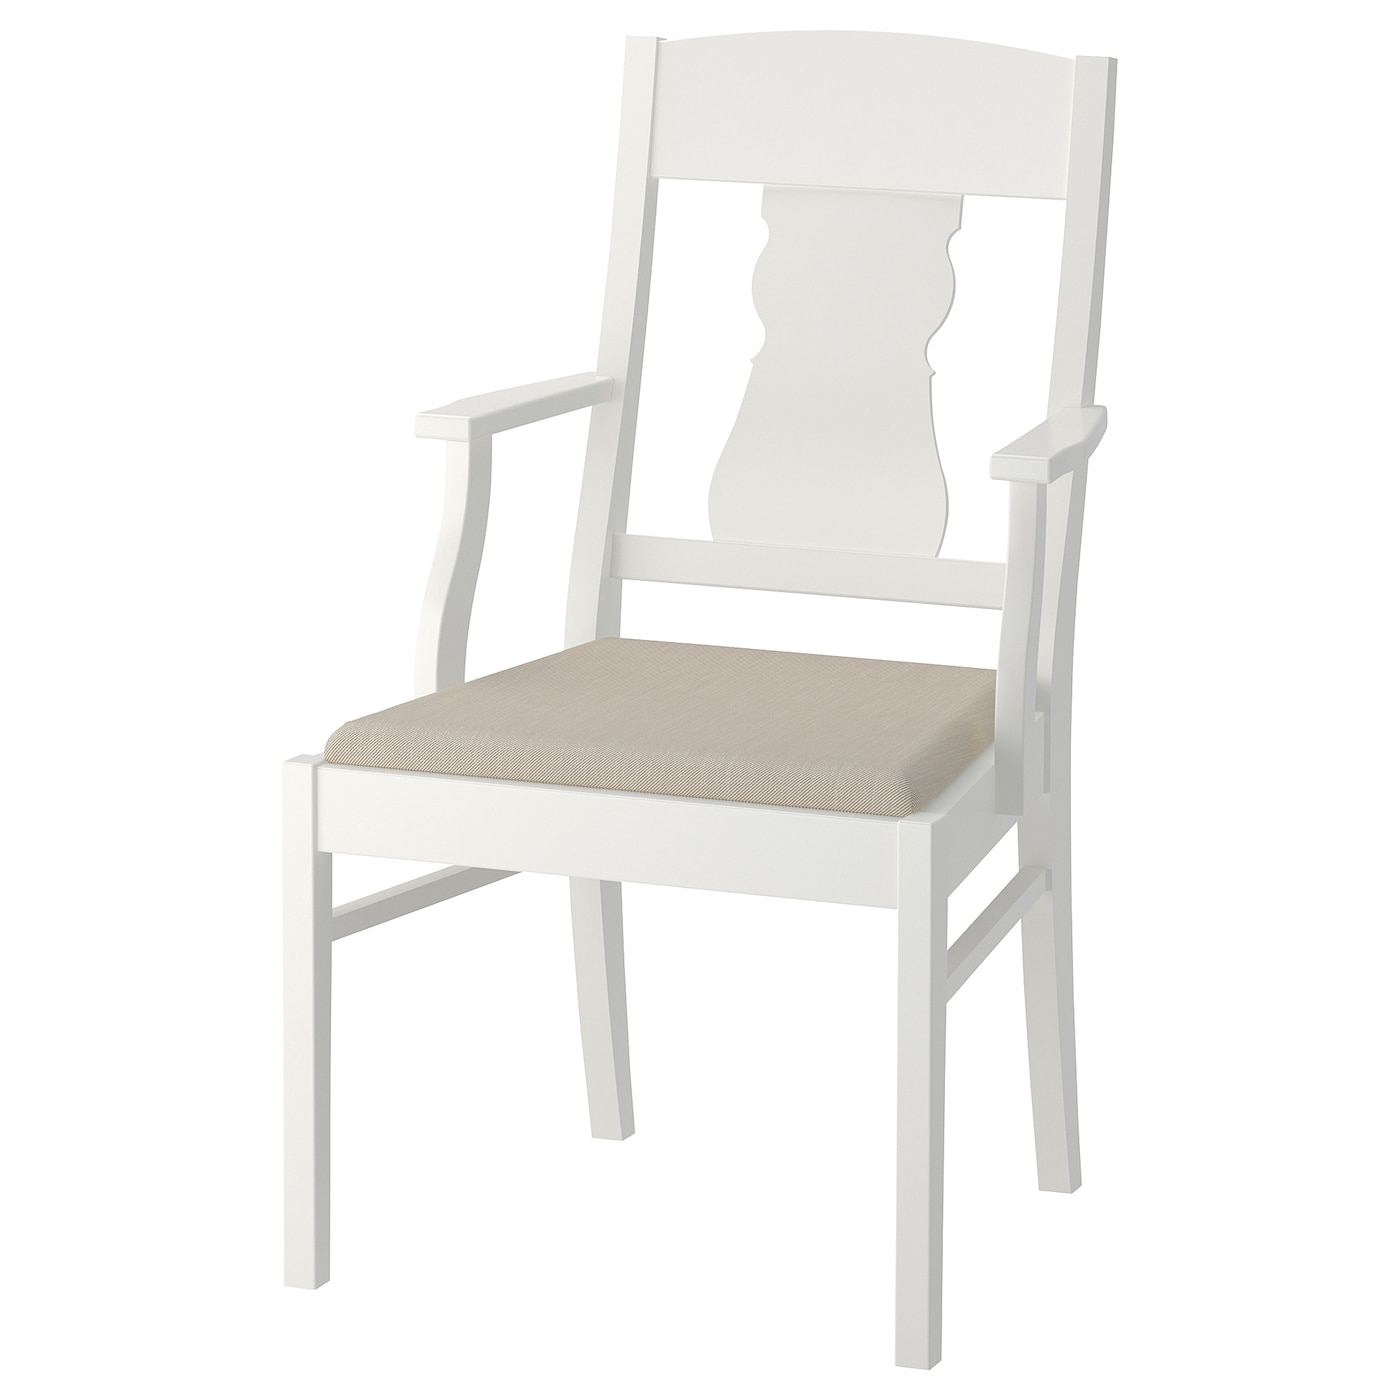 IKEA INGATORP chair with armrests